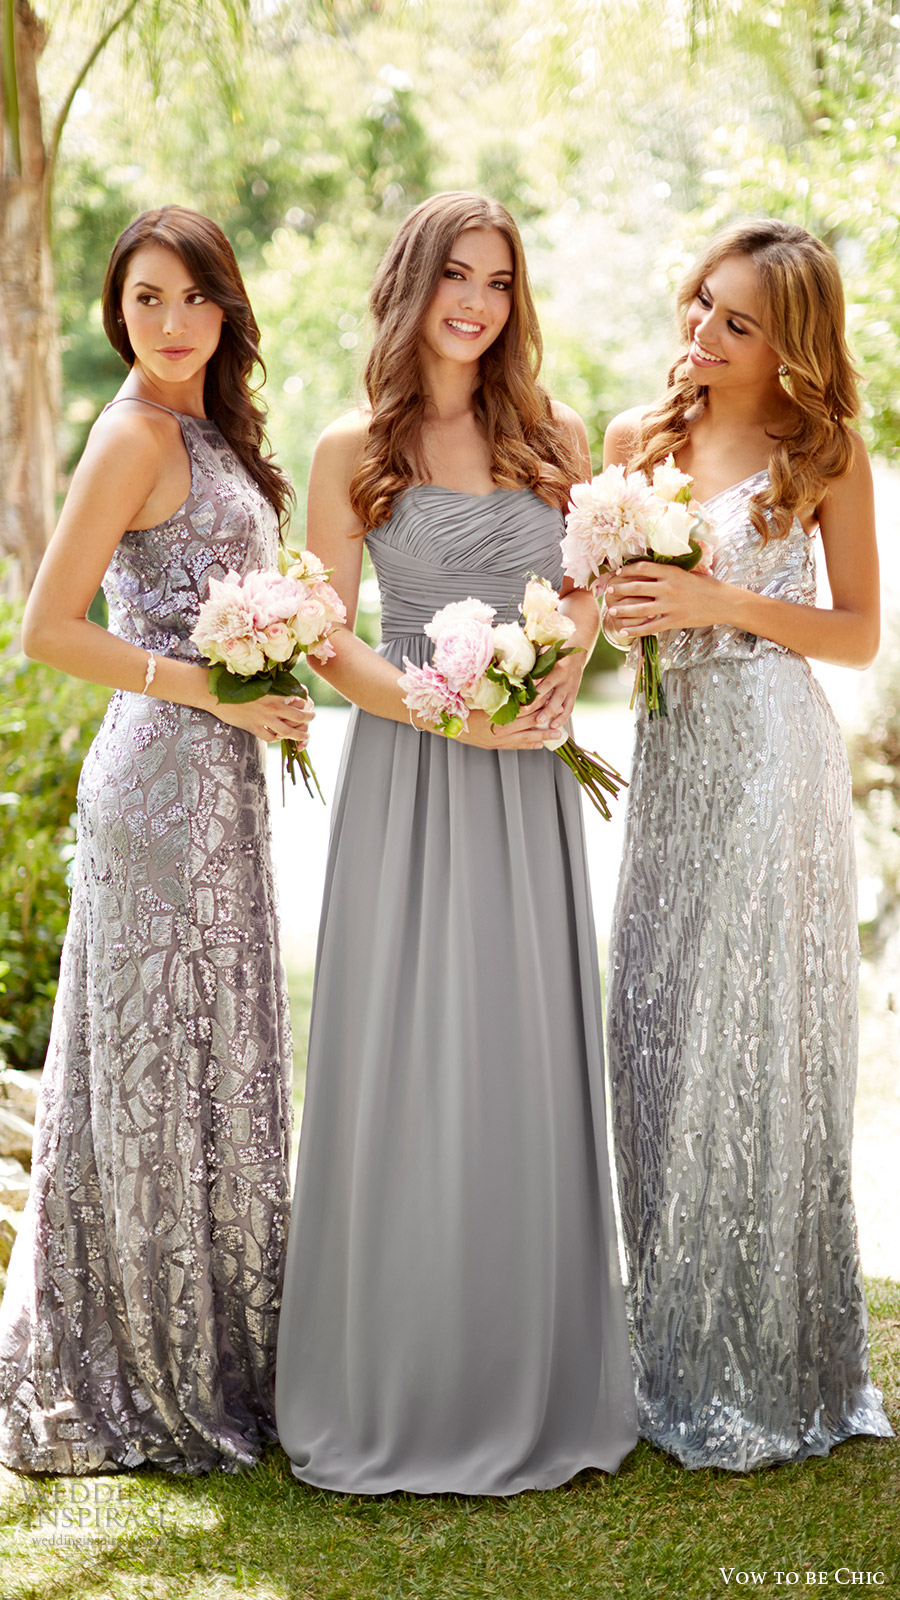 Vow To Be Chic 2016 Metallics Silver Grey Gray Bridesmaids Bridal Party Bridesmaid Dresses For